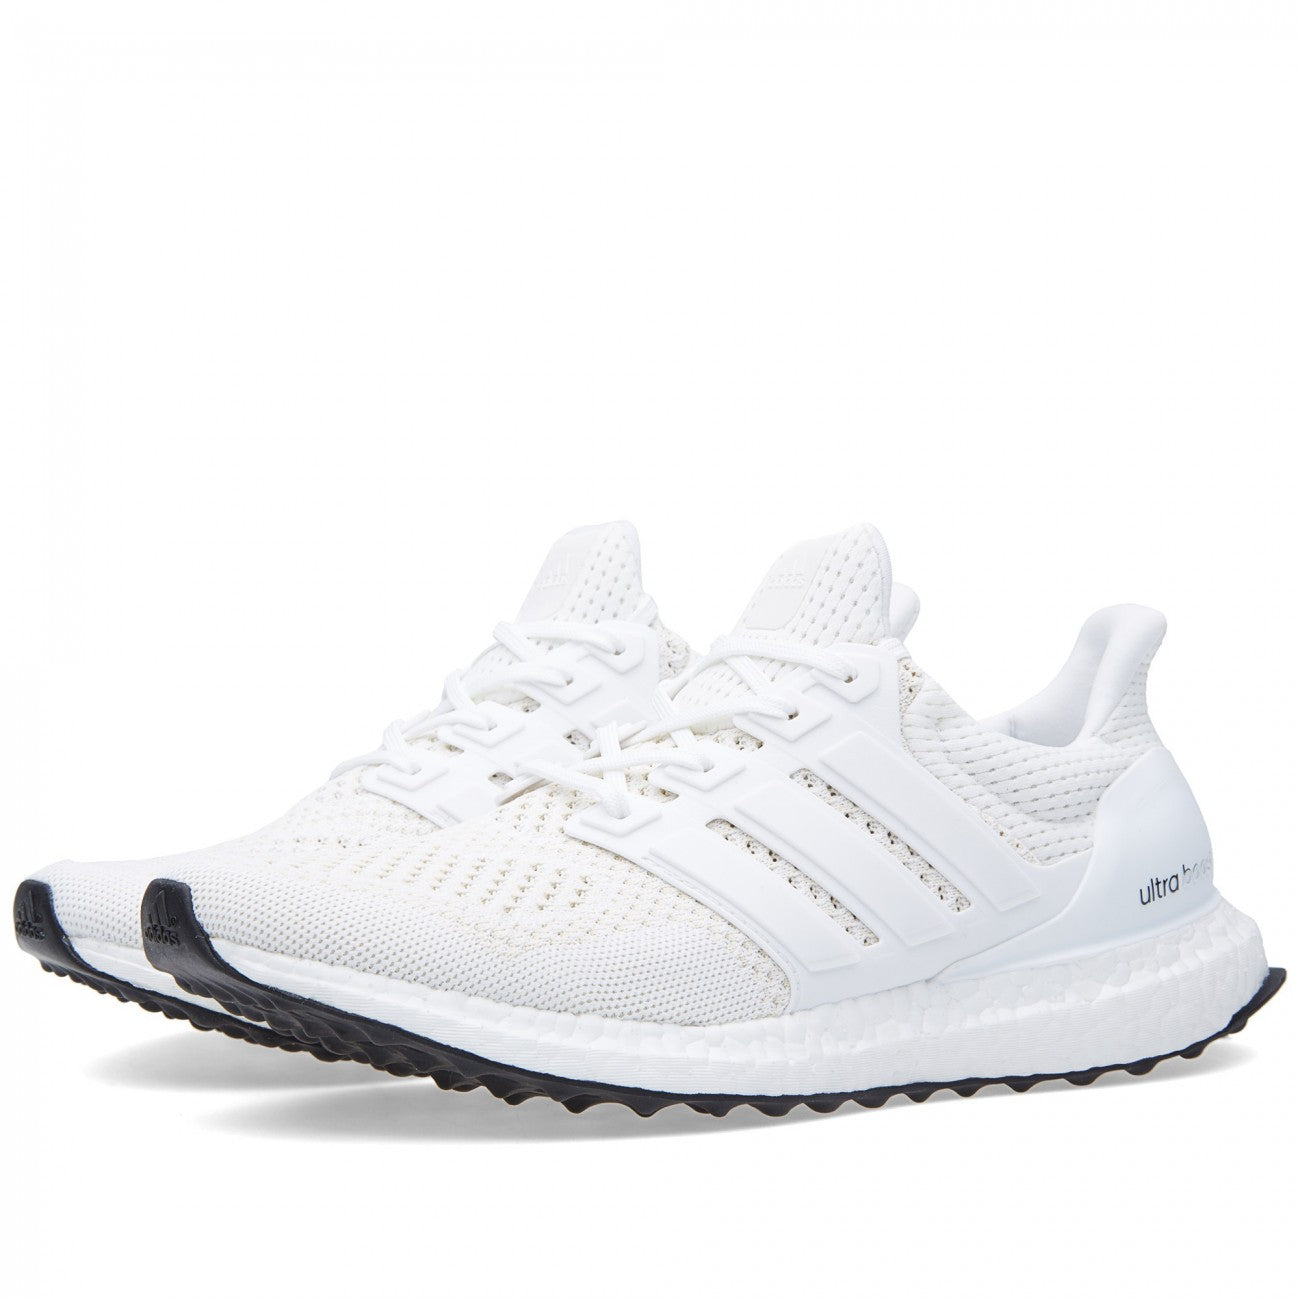 5fcd2746960 ADIDAS ULTRA BOOST 1.0 W WHITE   SILVER METALLIC – CREED.